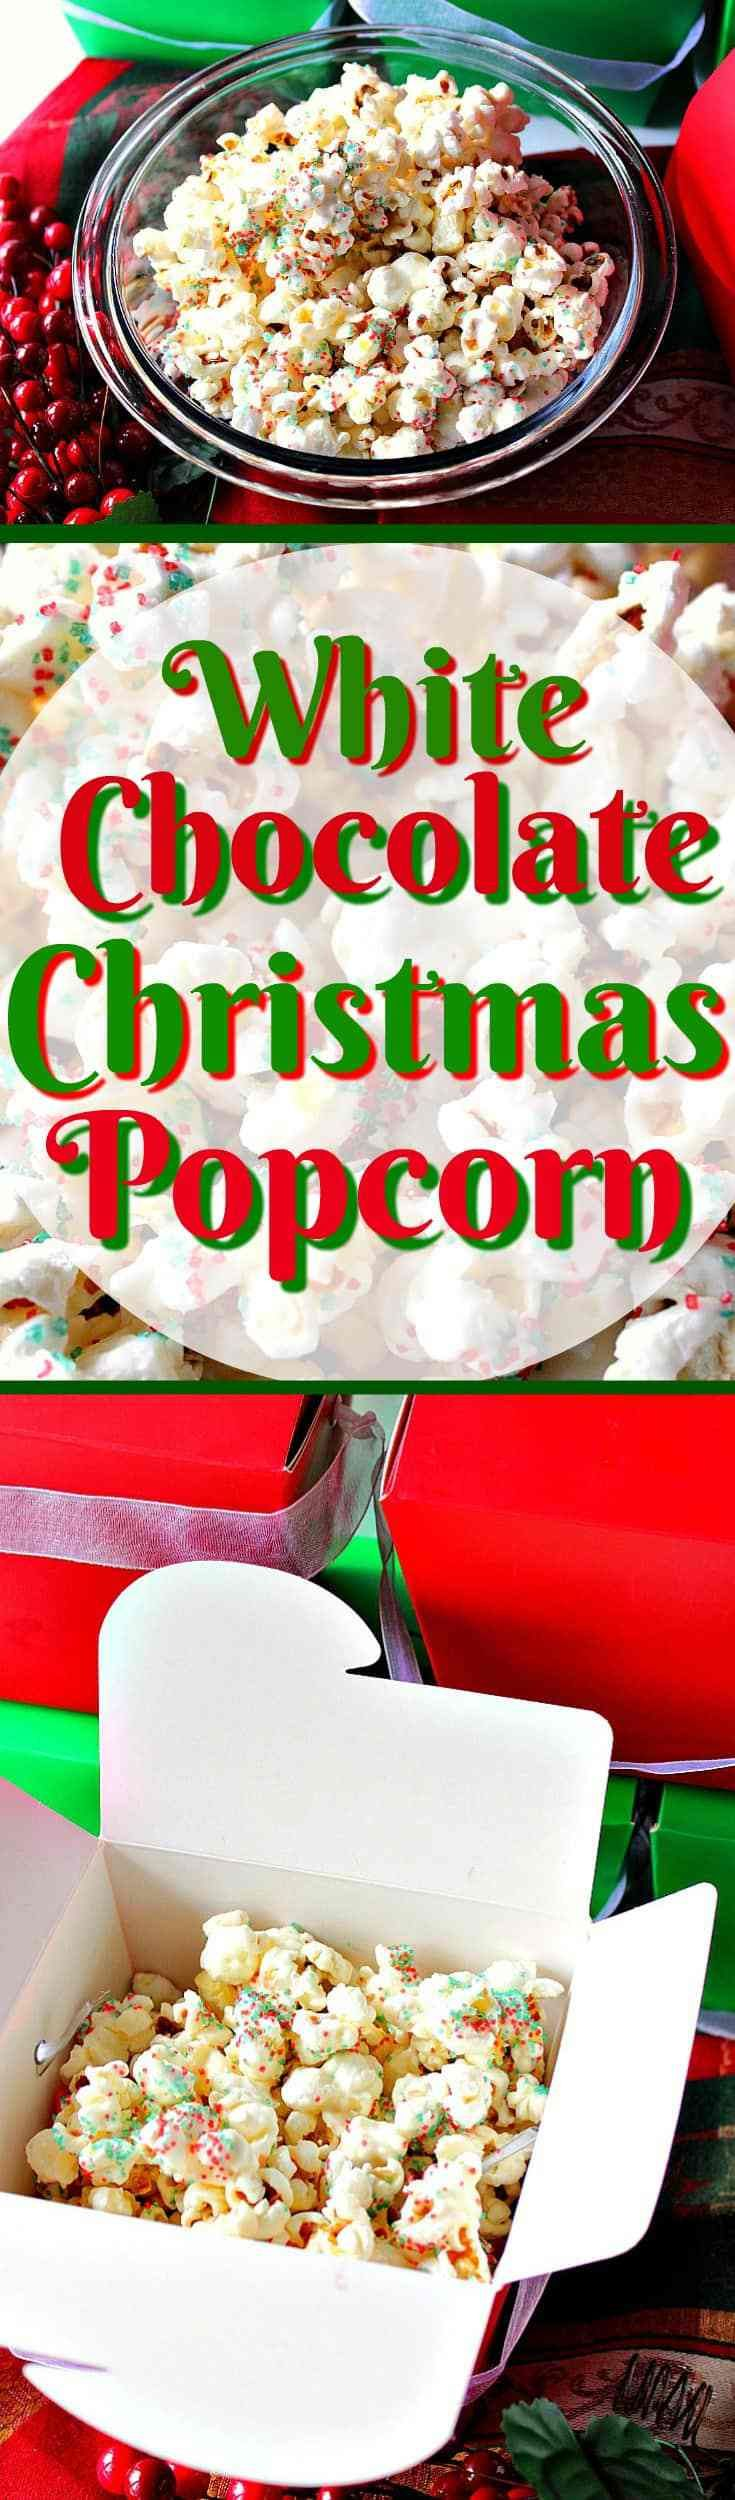 Looking for food gift ideas that won't break the bank and that any skill-level in the kitchen will be successful with, even the kiddos? Look no further. This Easy Delicious White Chocolate Christmas Popcorn is a tasty treat everyone on your gift giving list will enjoy receiving! - Kudos Kitchen by Renee